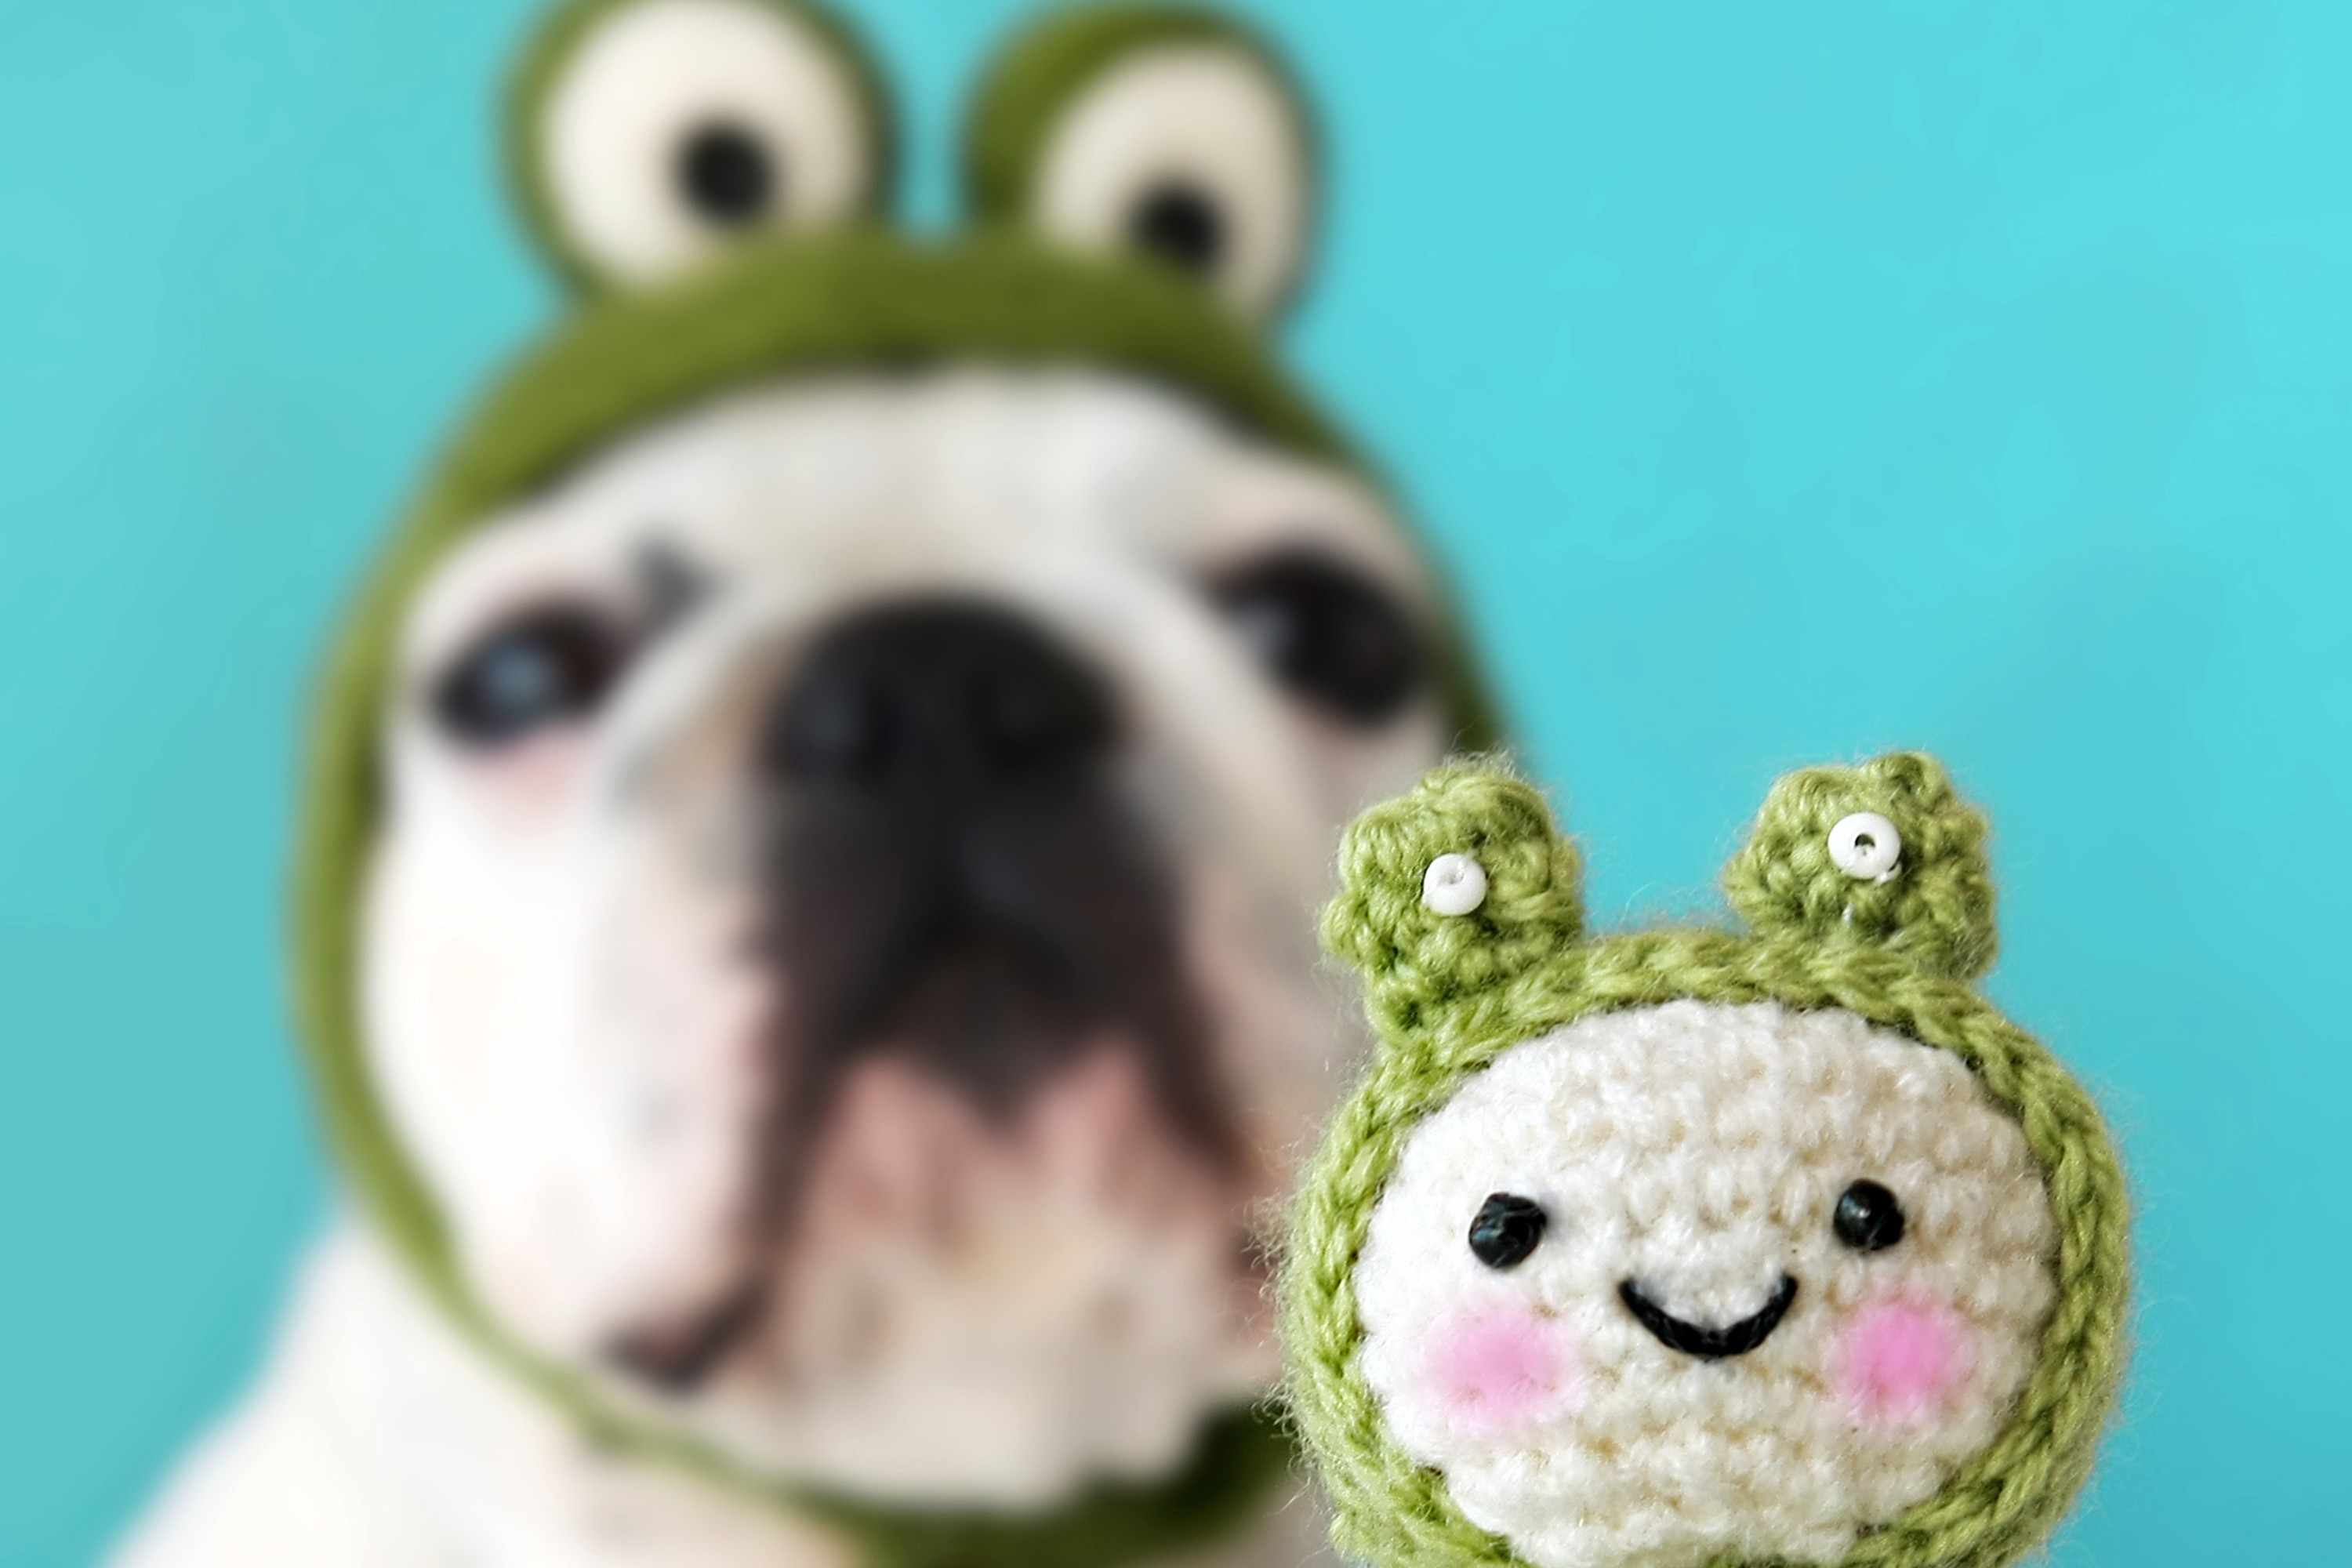 d93f84419d9 Crocheting and creativity turn an adorable dog into an adorable frog